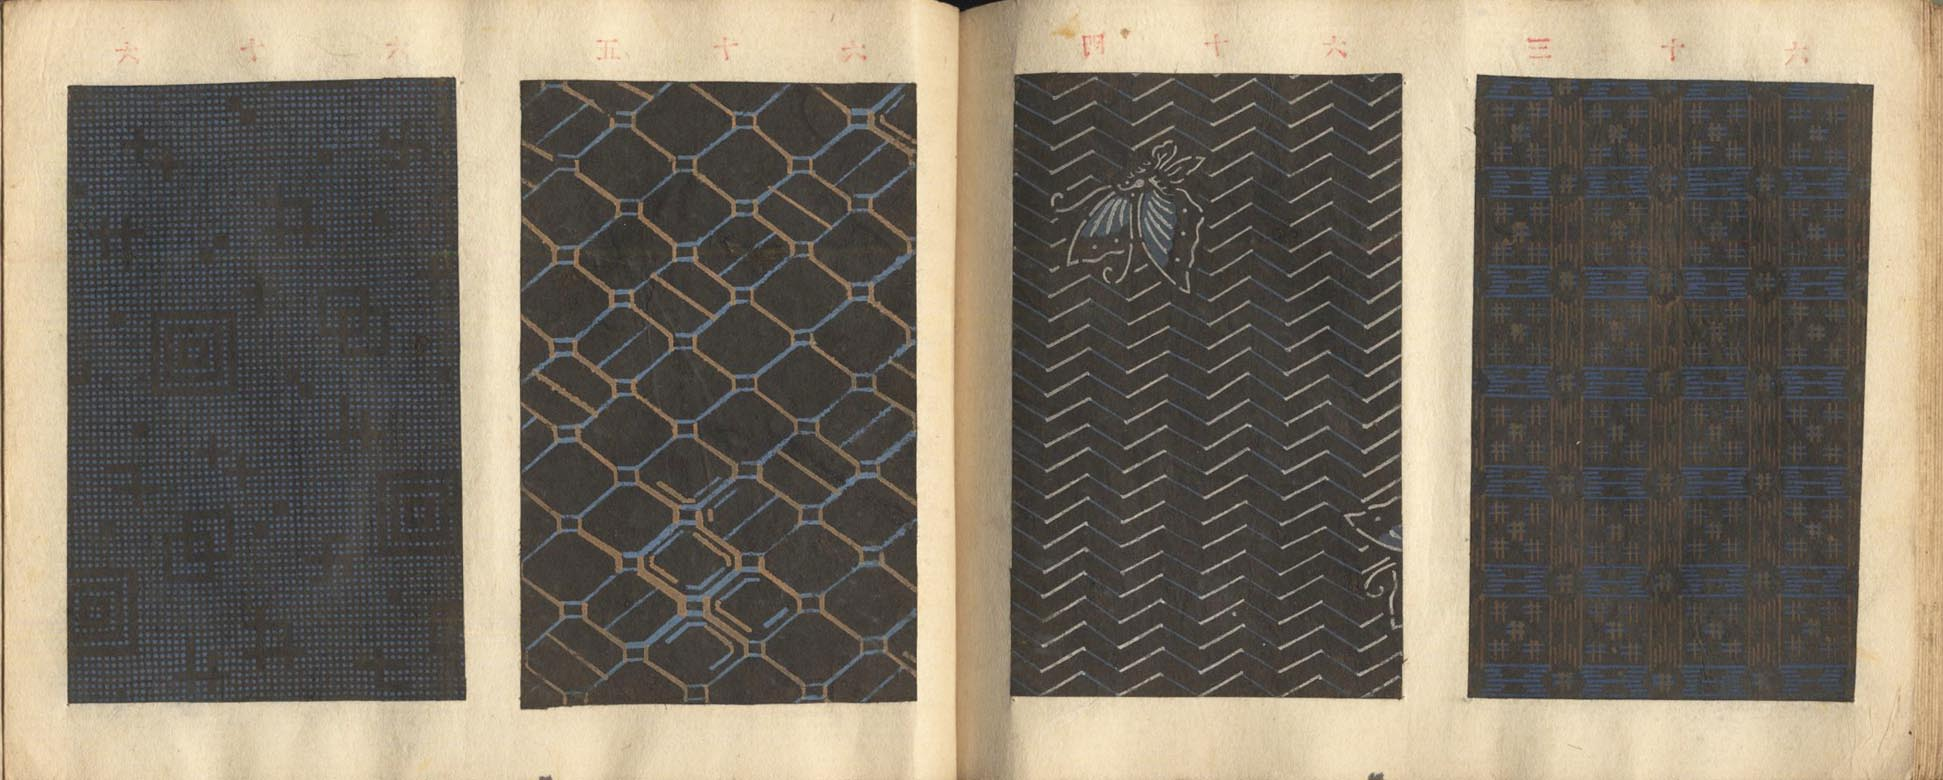 ANONYMOUS COMPILER. Komon chō. (Sold)